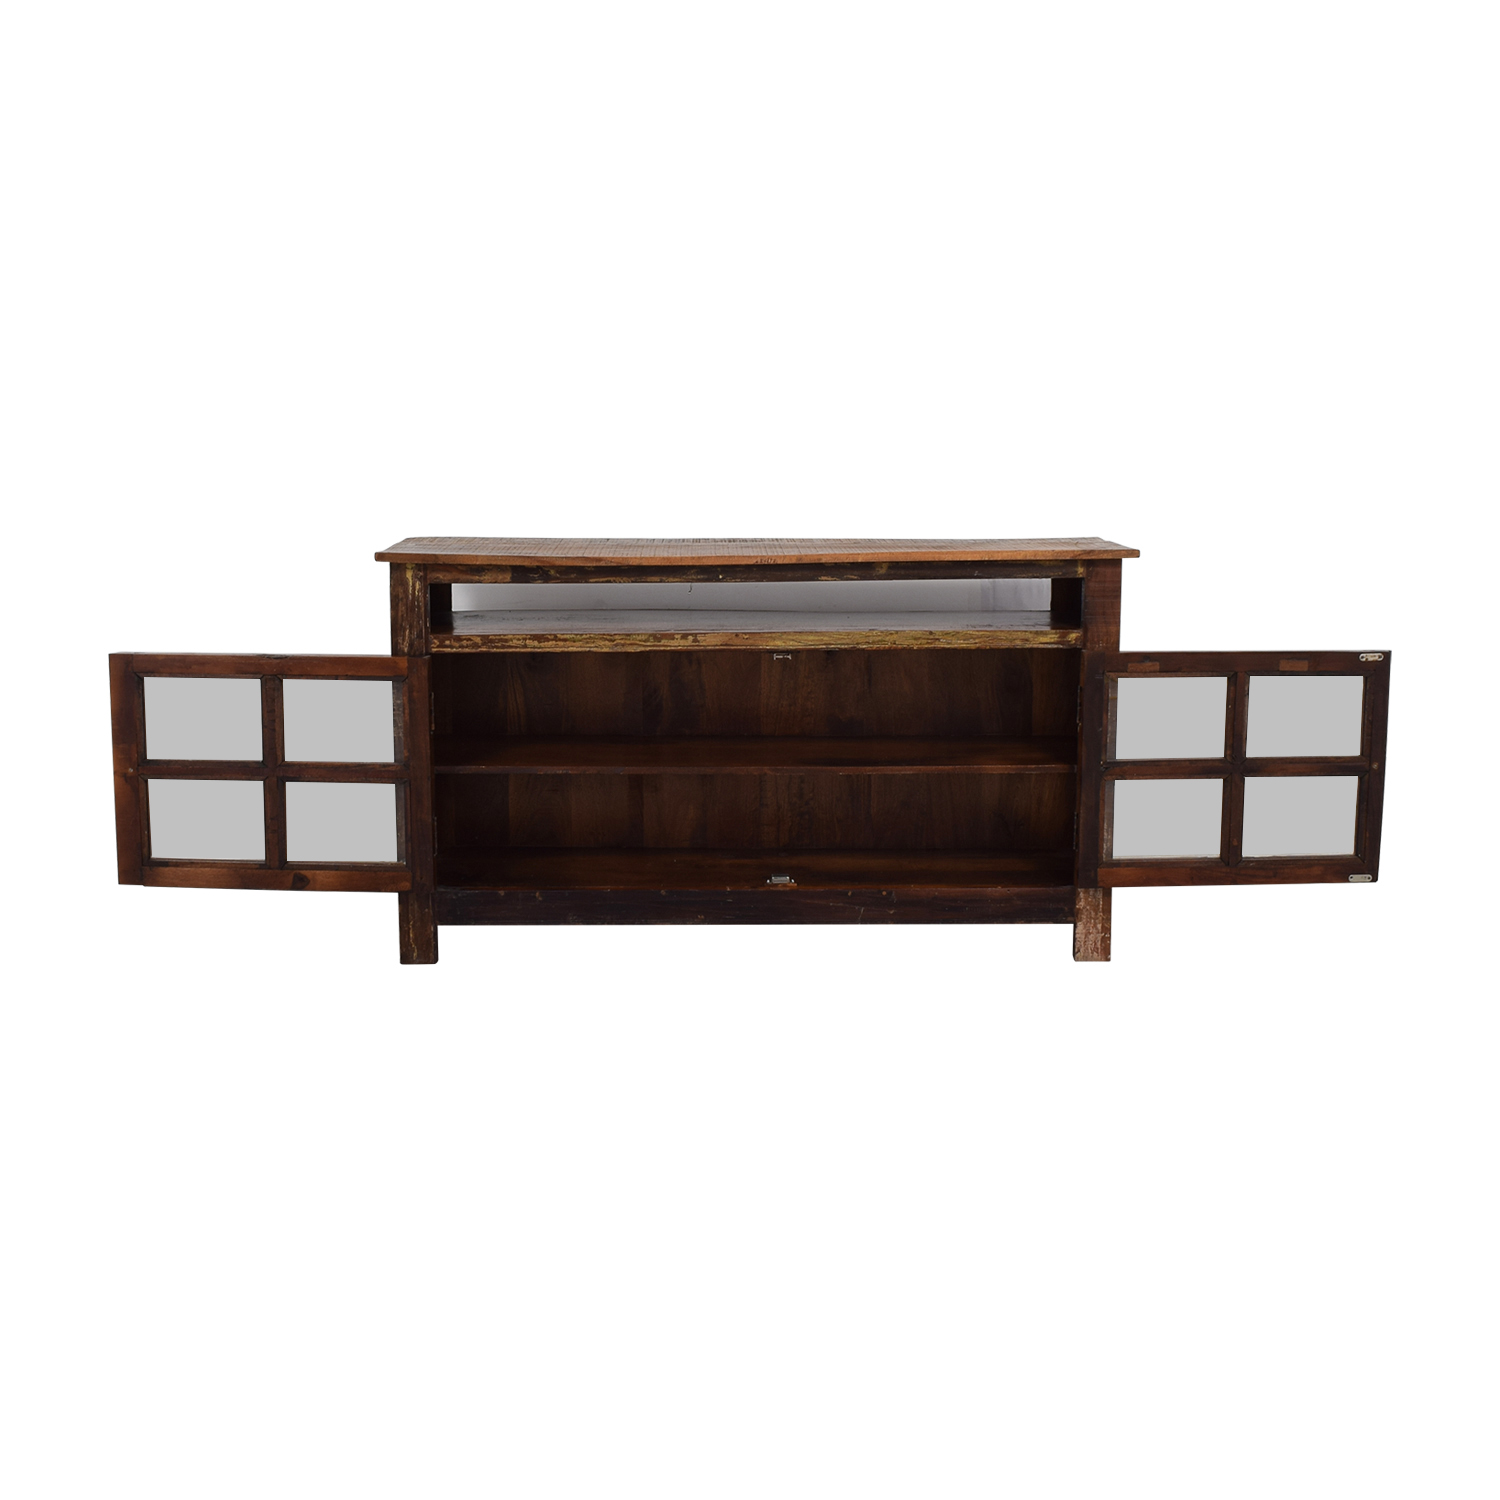 Custom Rustic Distressed Wood TV Console on sale